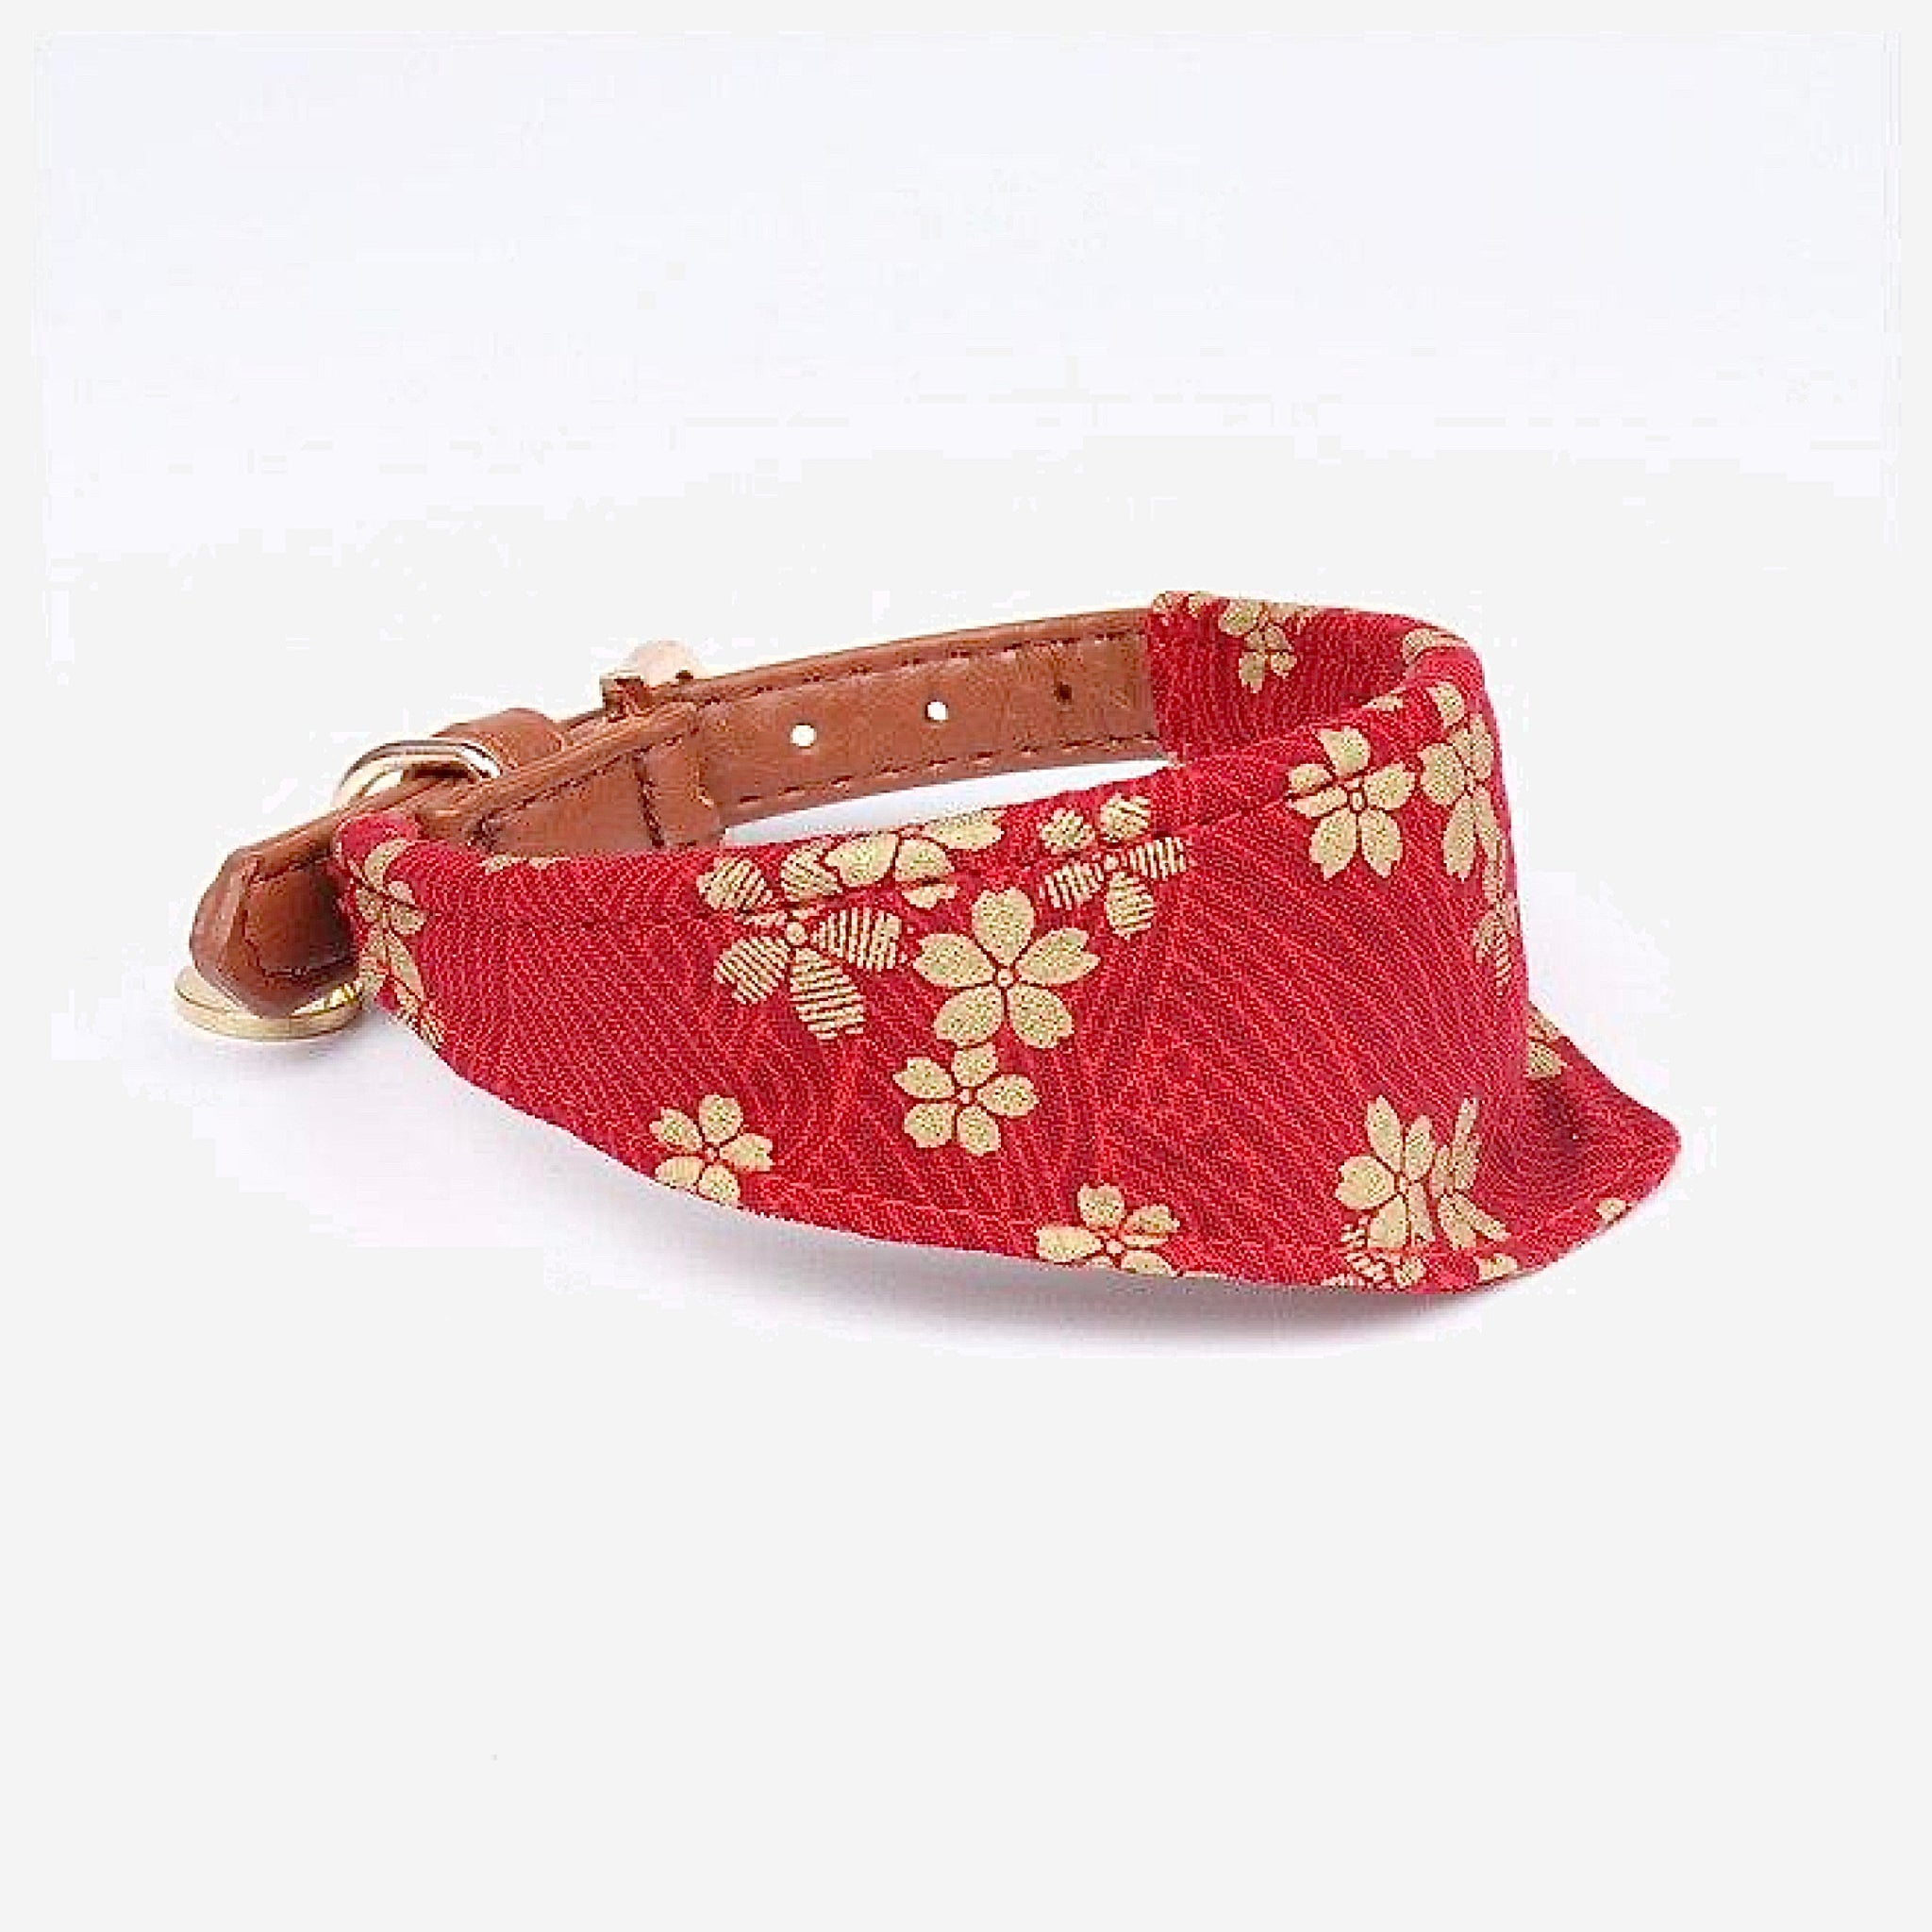 Japanese Bandana Pet Collar    Made of leather buckle design fine workmanship triangle scarf Japan pets supplies for cats and dogs Red Cherry Blossom Trend